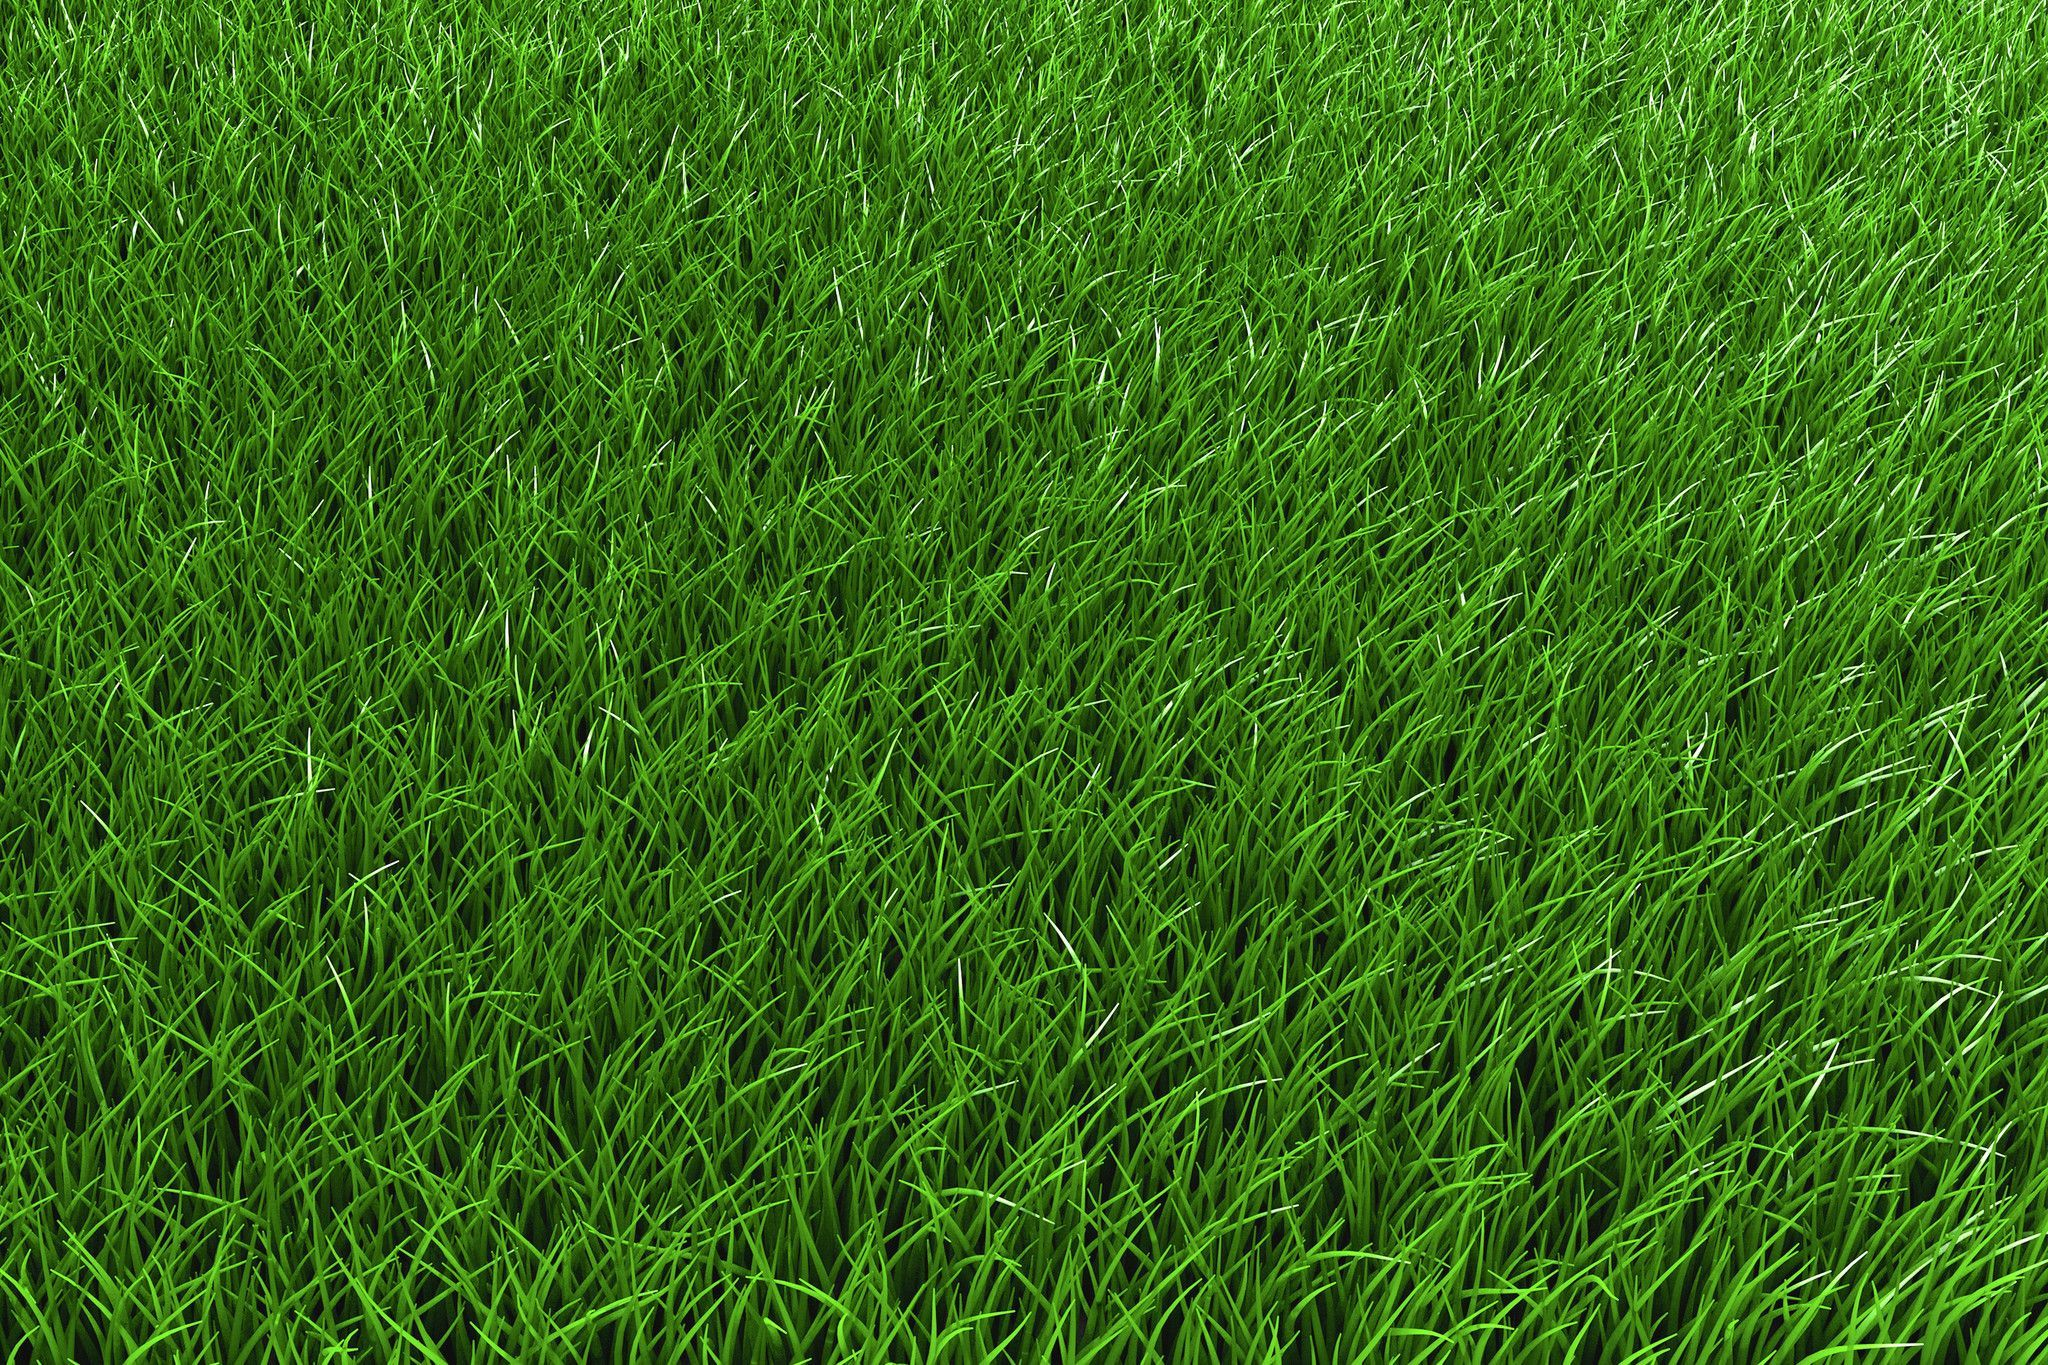 Kenicott Creeping red fescue is the perfect perennial